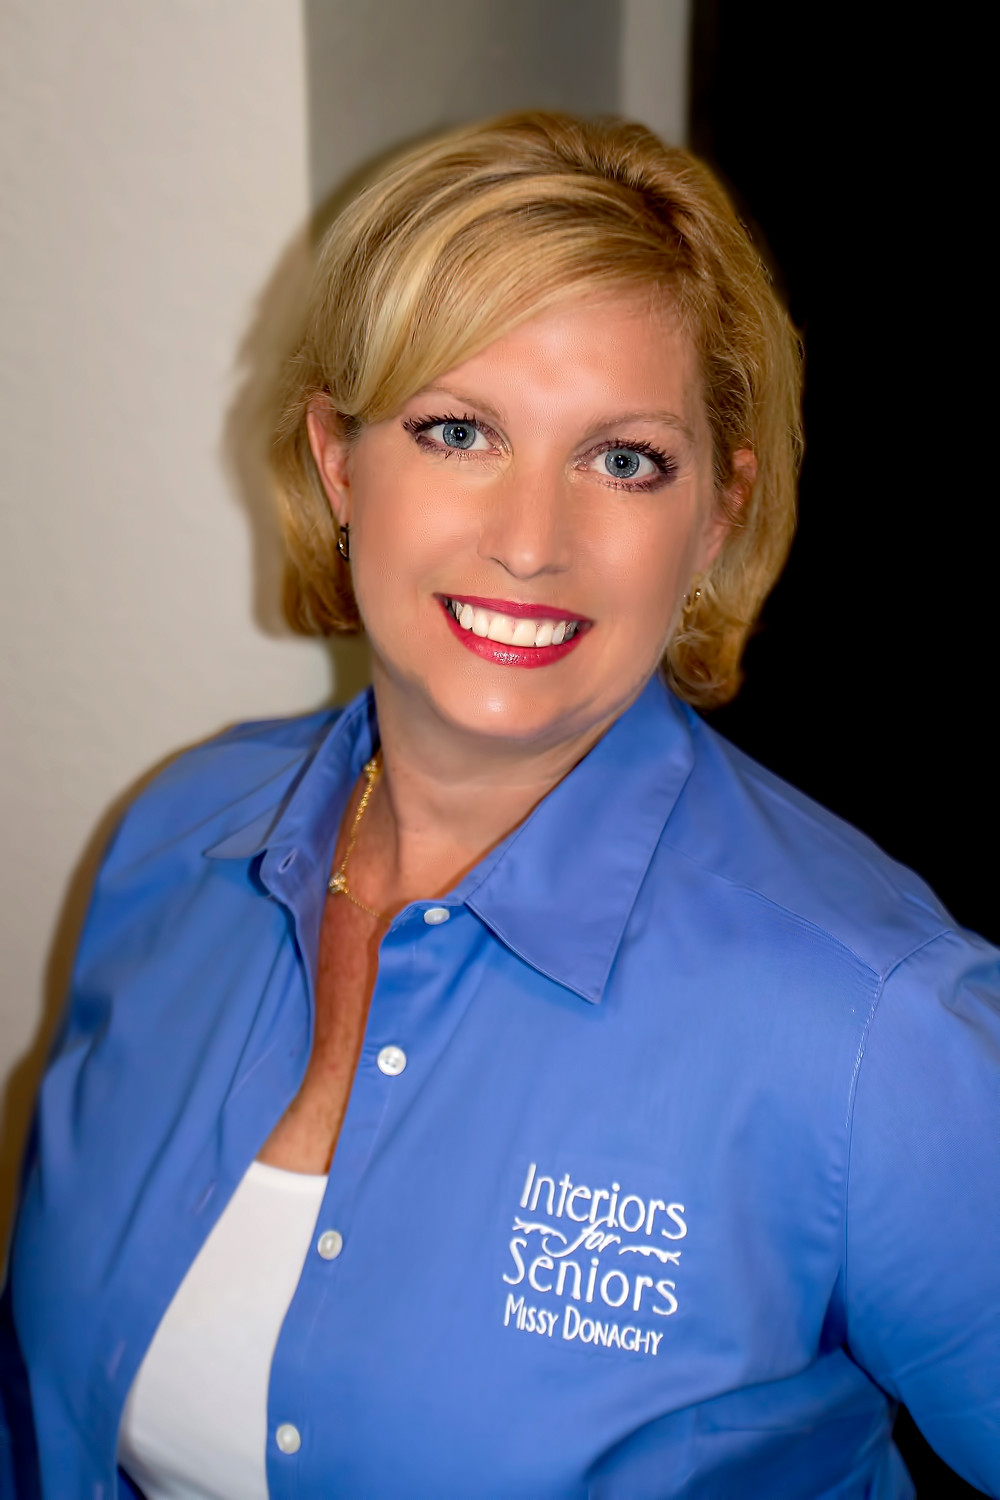 Missy Donaghy, owner/operator of Interiors for Seniors